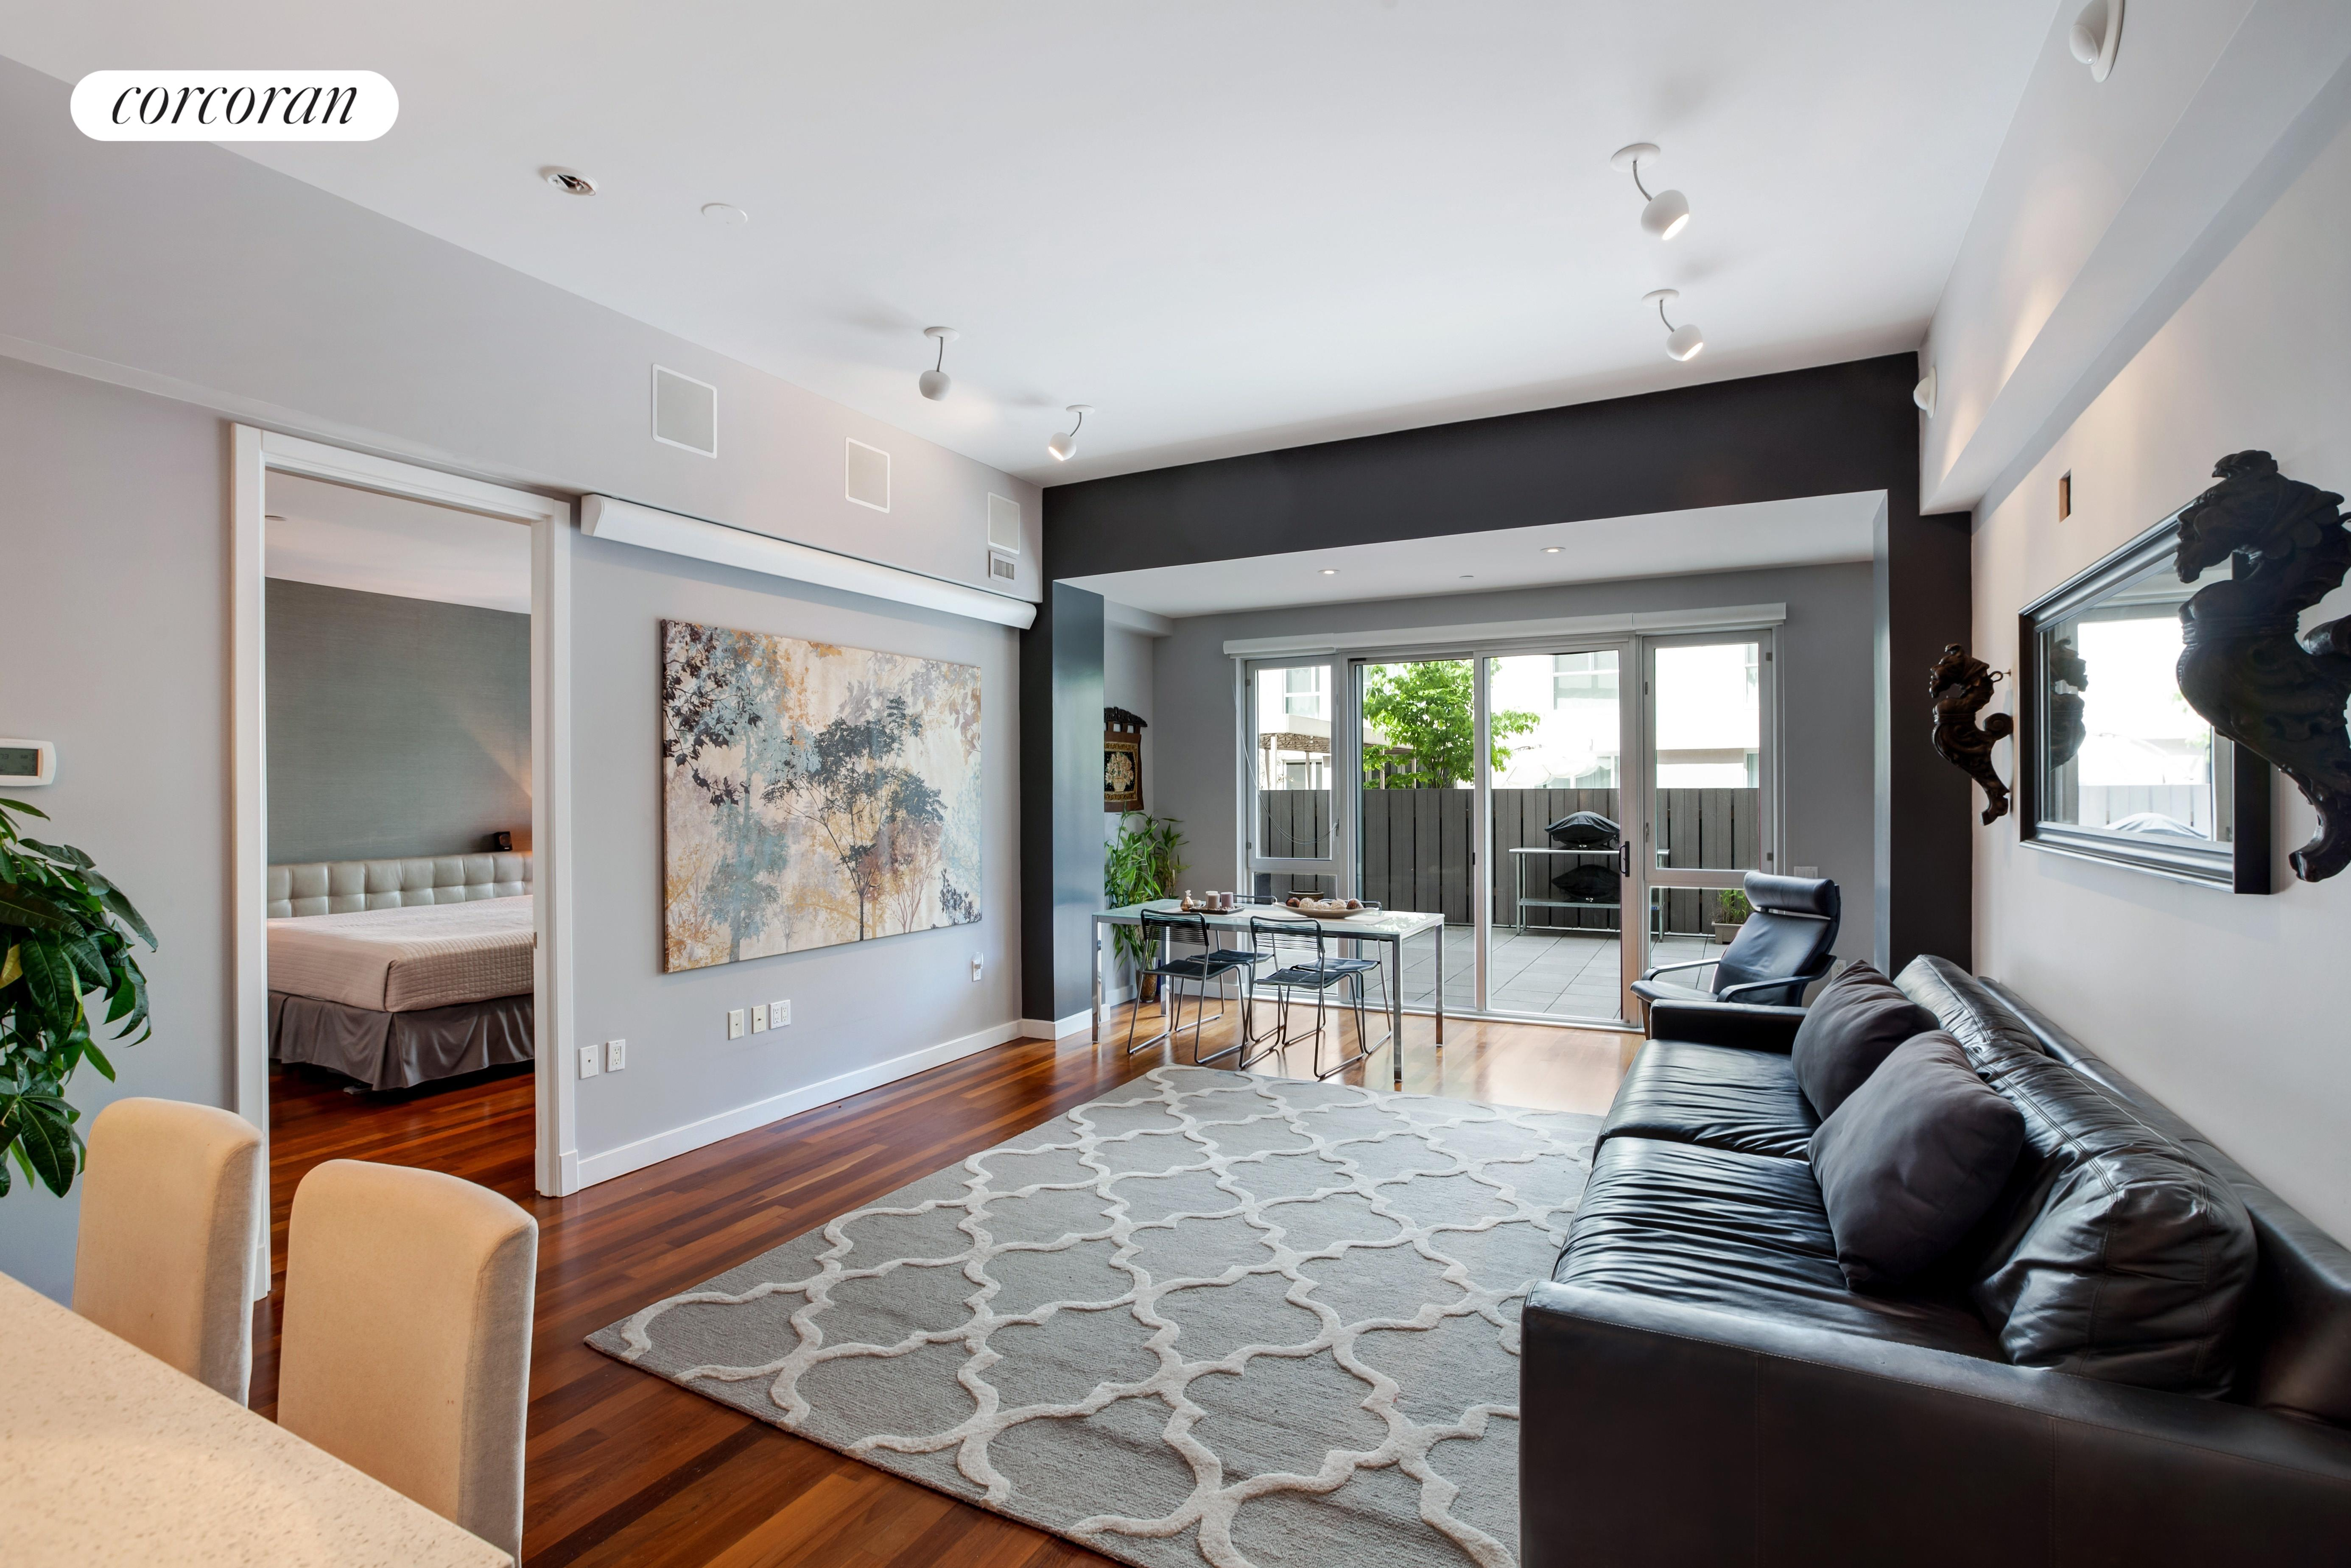 125 North 10th Street, South GB, large living room with high ceilings